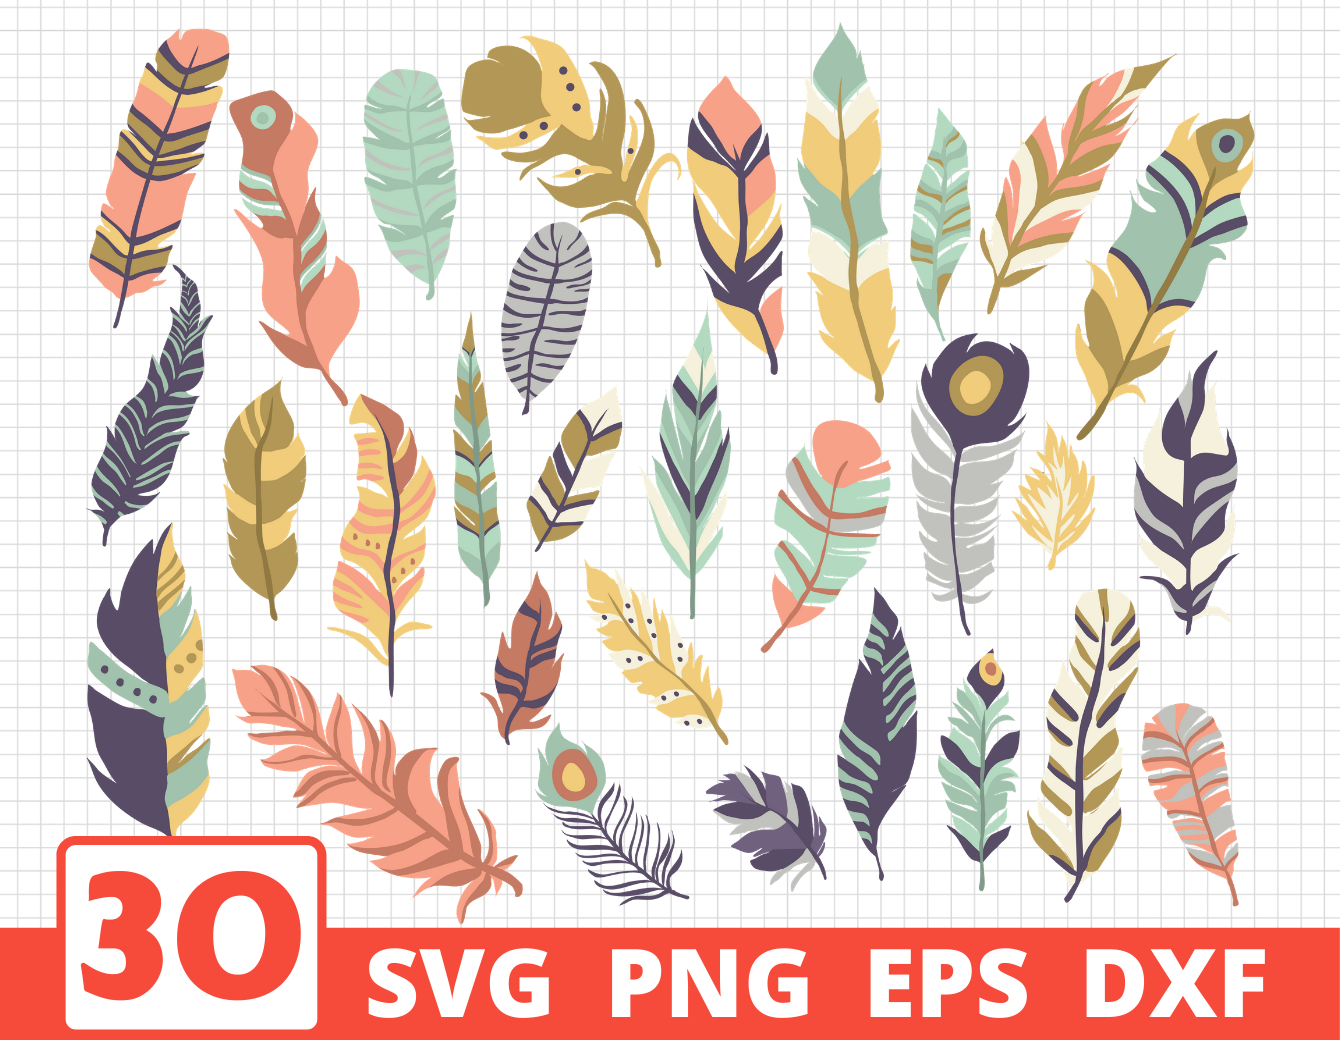 Feathers Svg Bundle Colored Silhouette Sketch By Svgocean